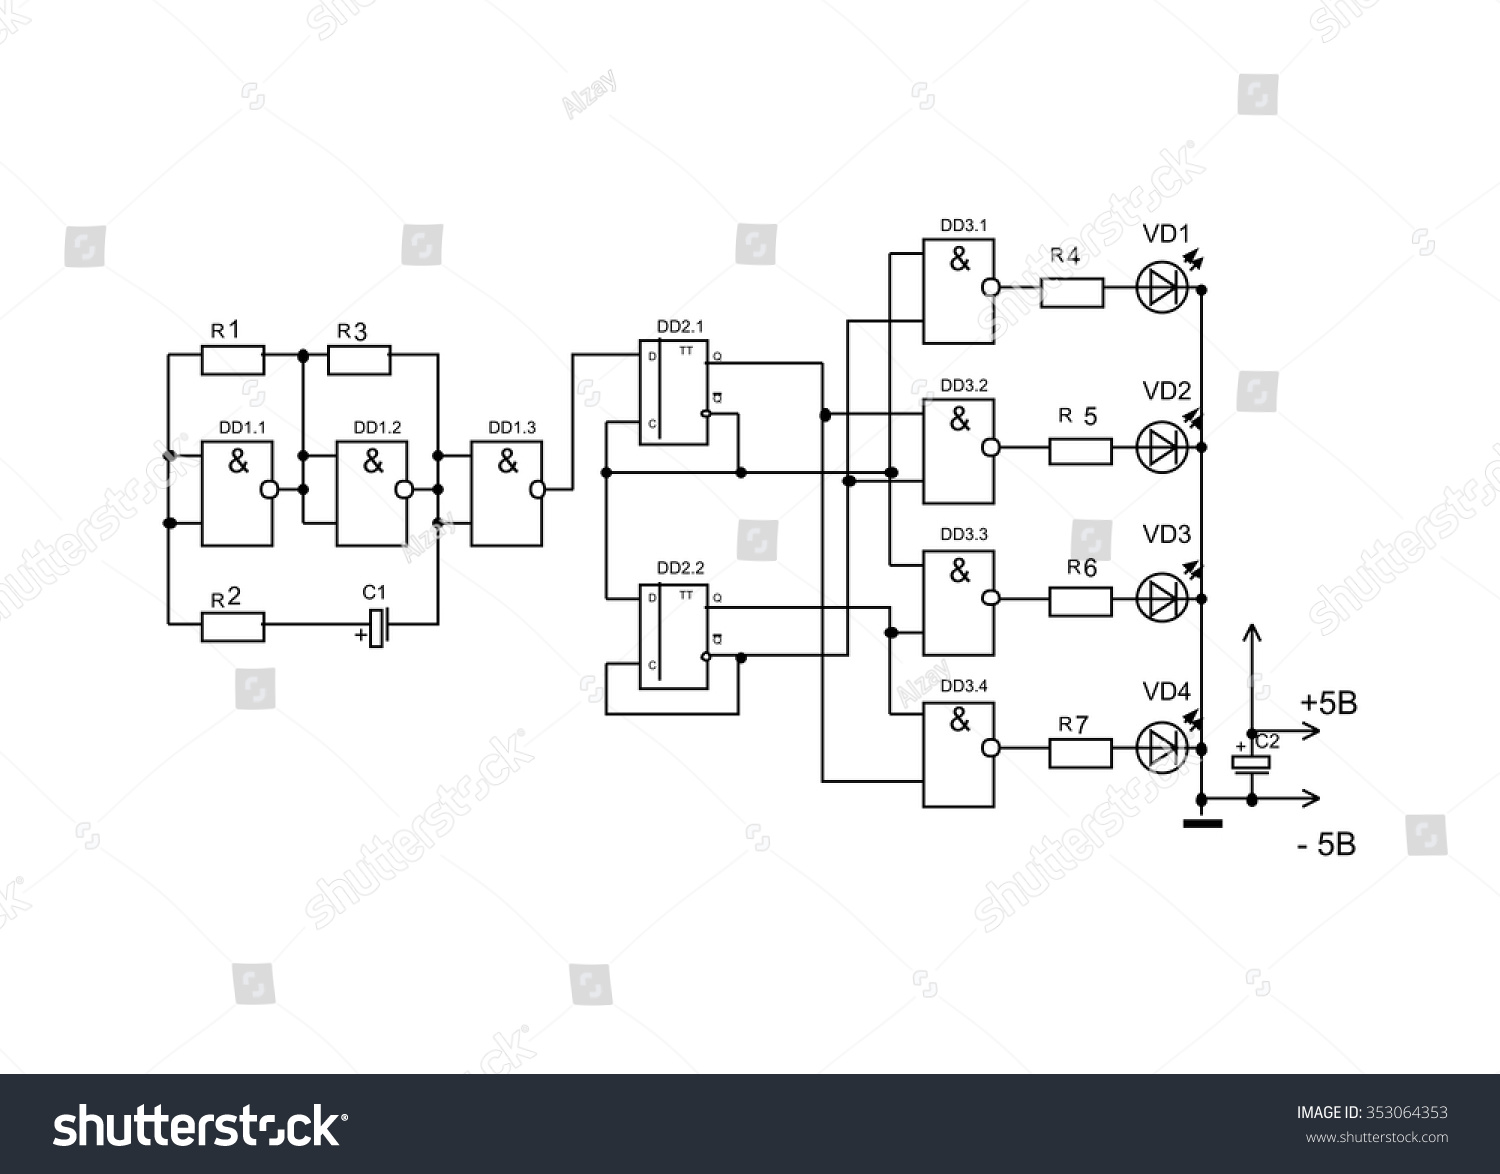 Schematic Diagram Project Of Electronic Circuit Graphic Design Electronics Royalty Free Vector 353064353 Stock